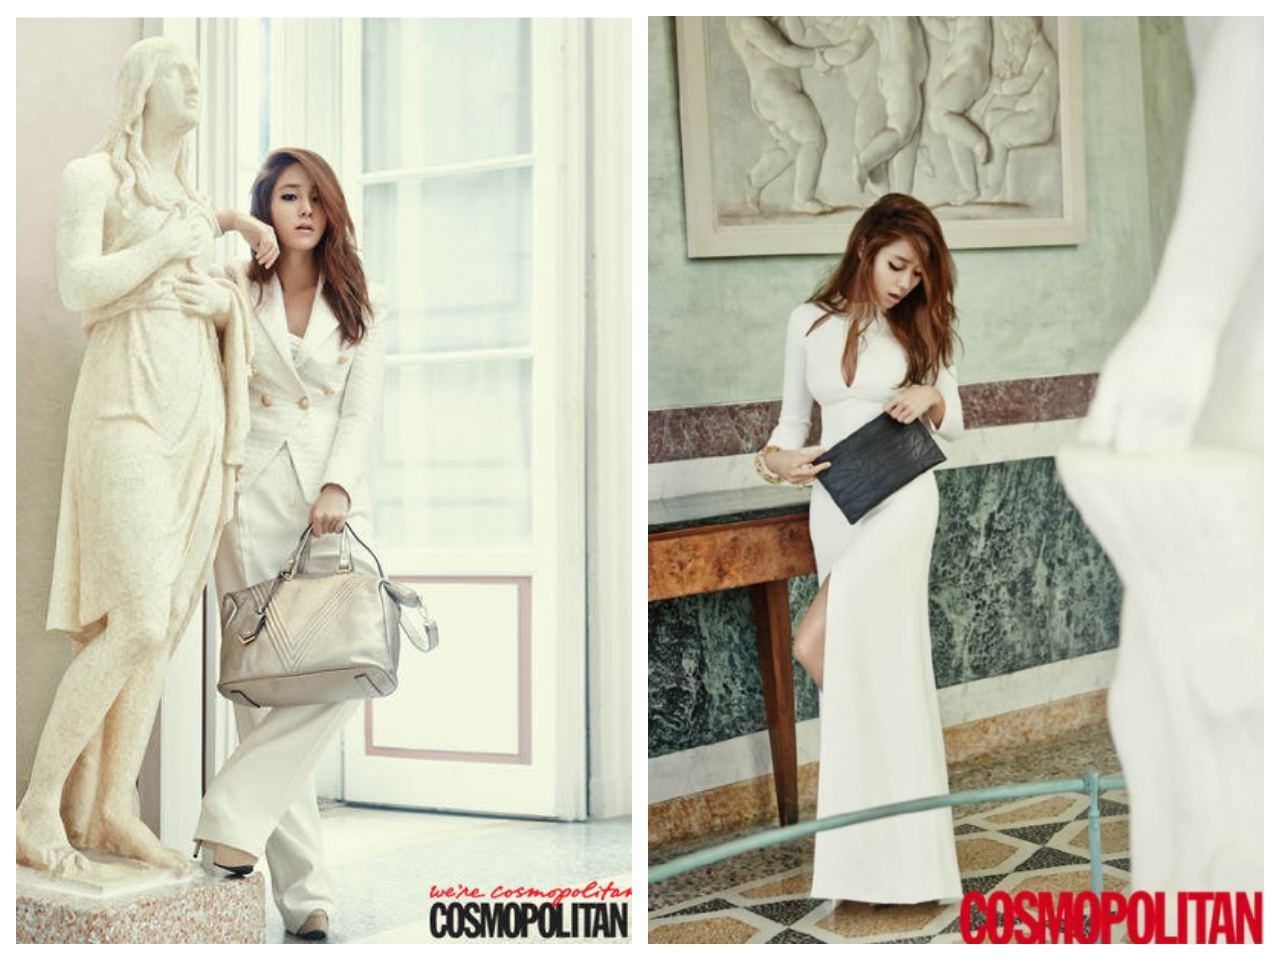 Lee Min Jung Cosmo Sept (2)